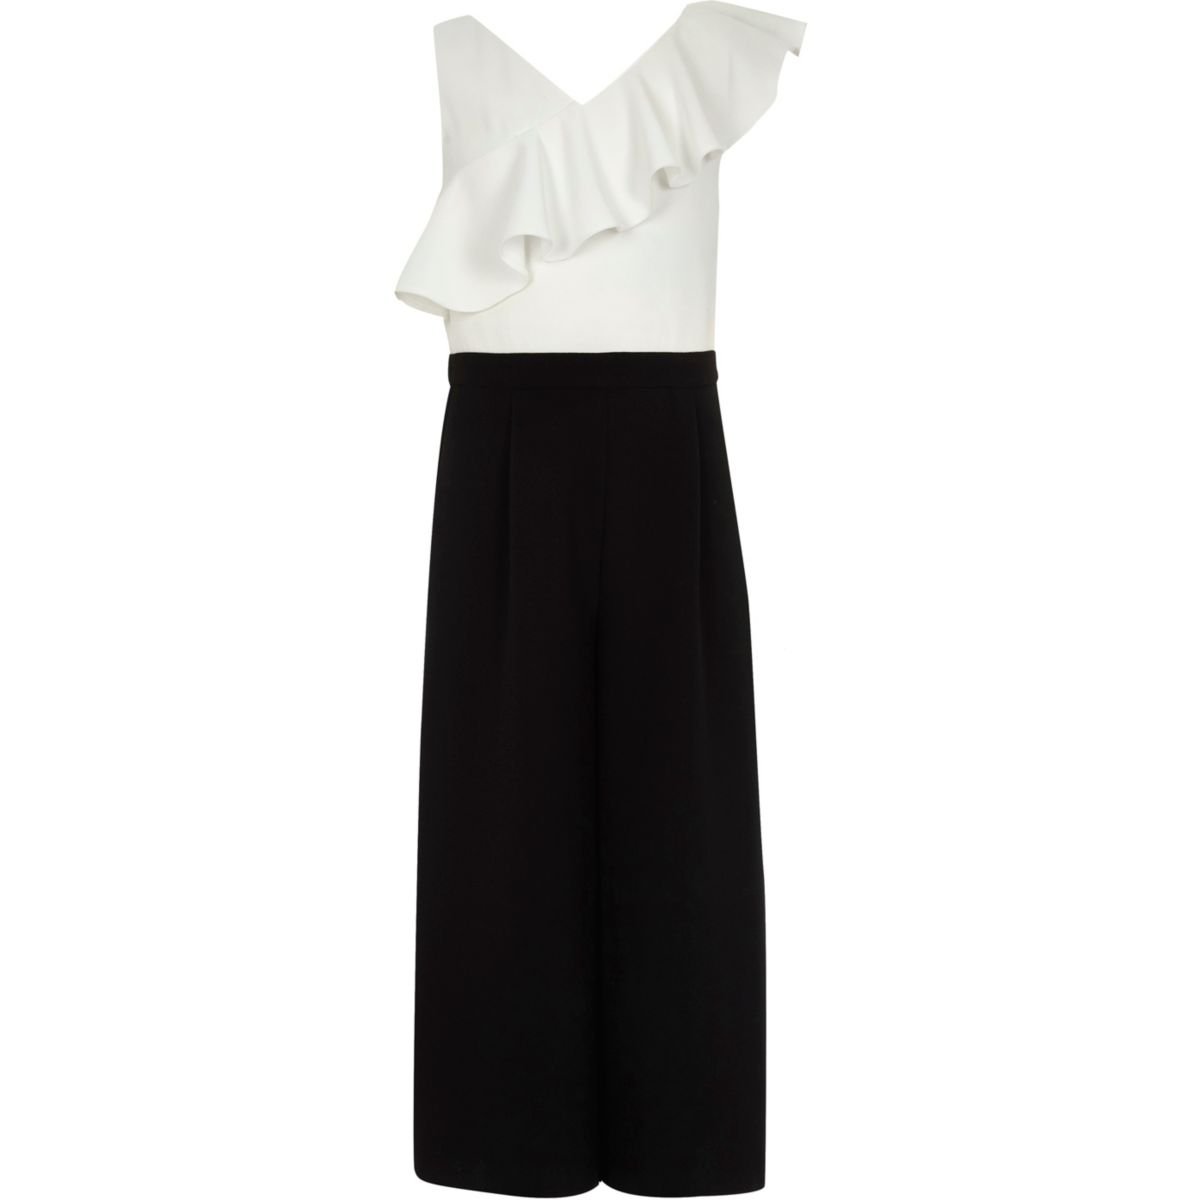 Girls black and white frill culotte jumpsuit